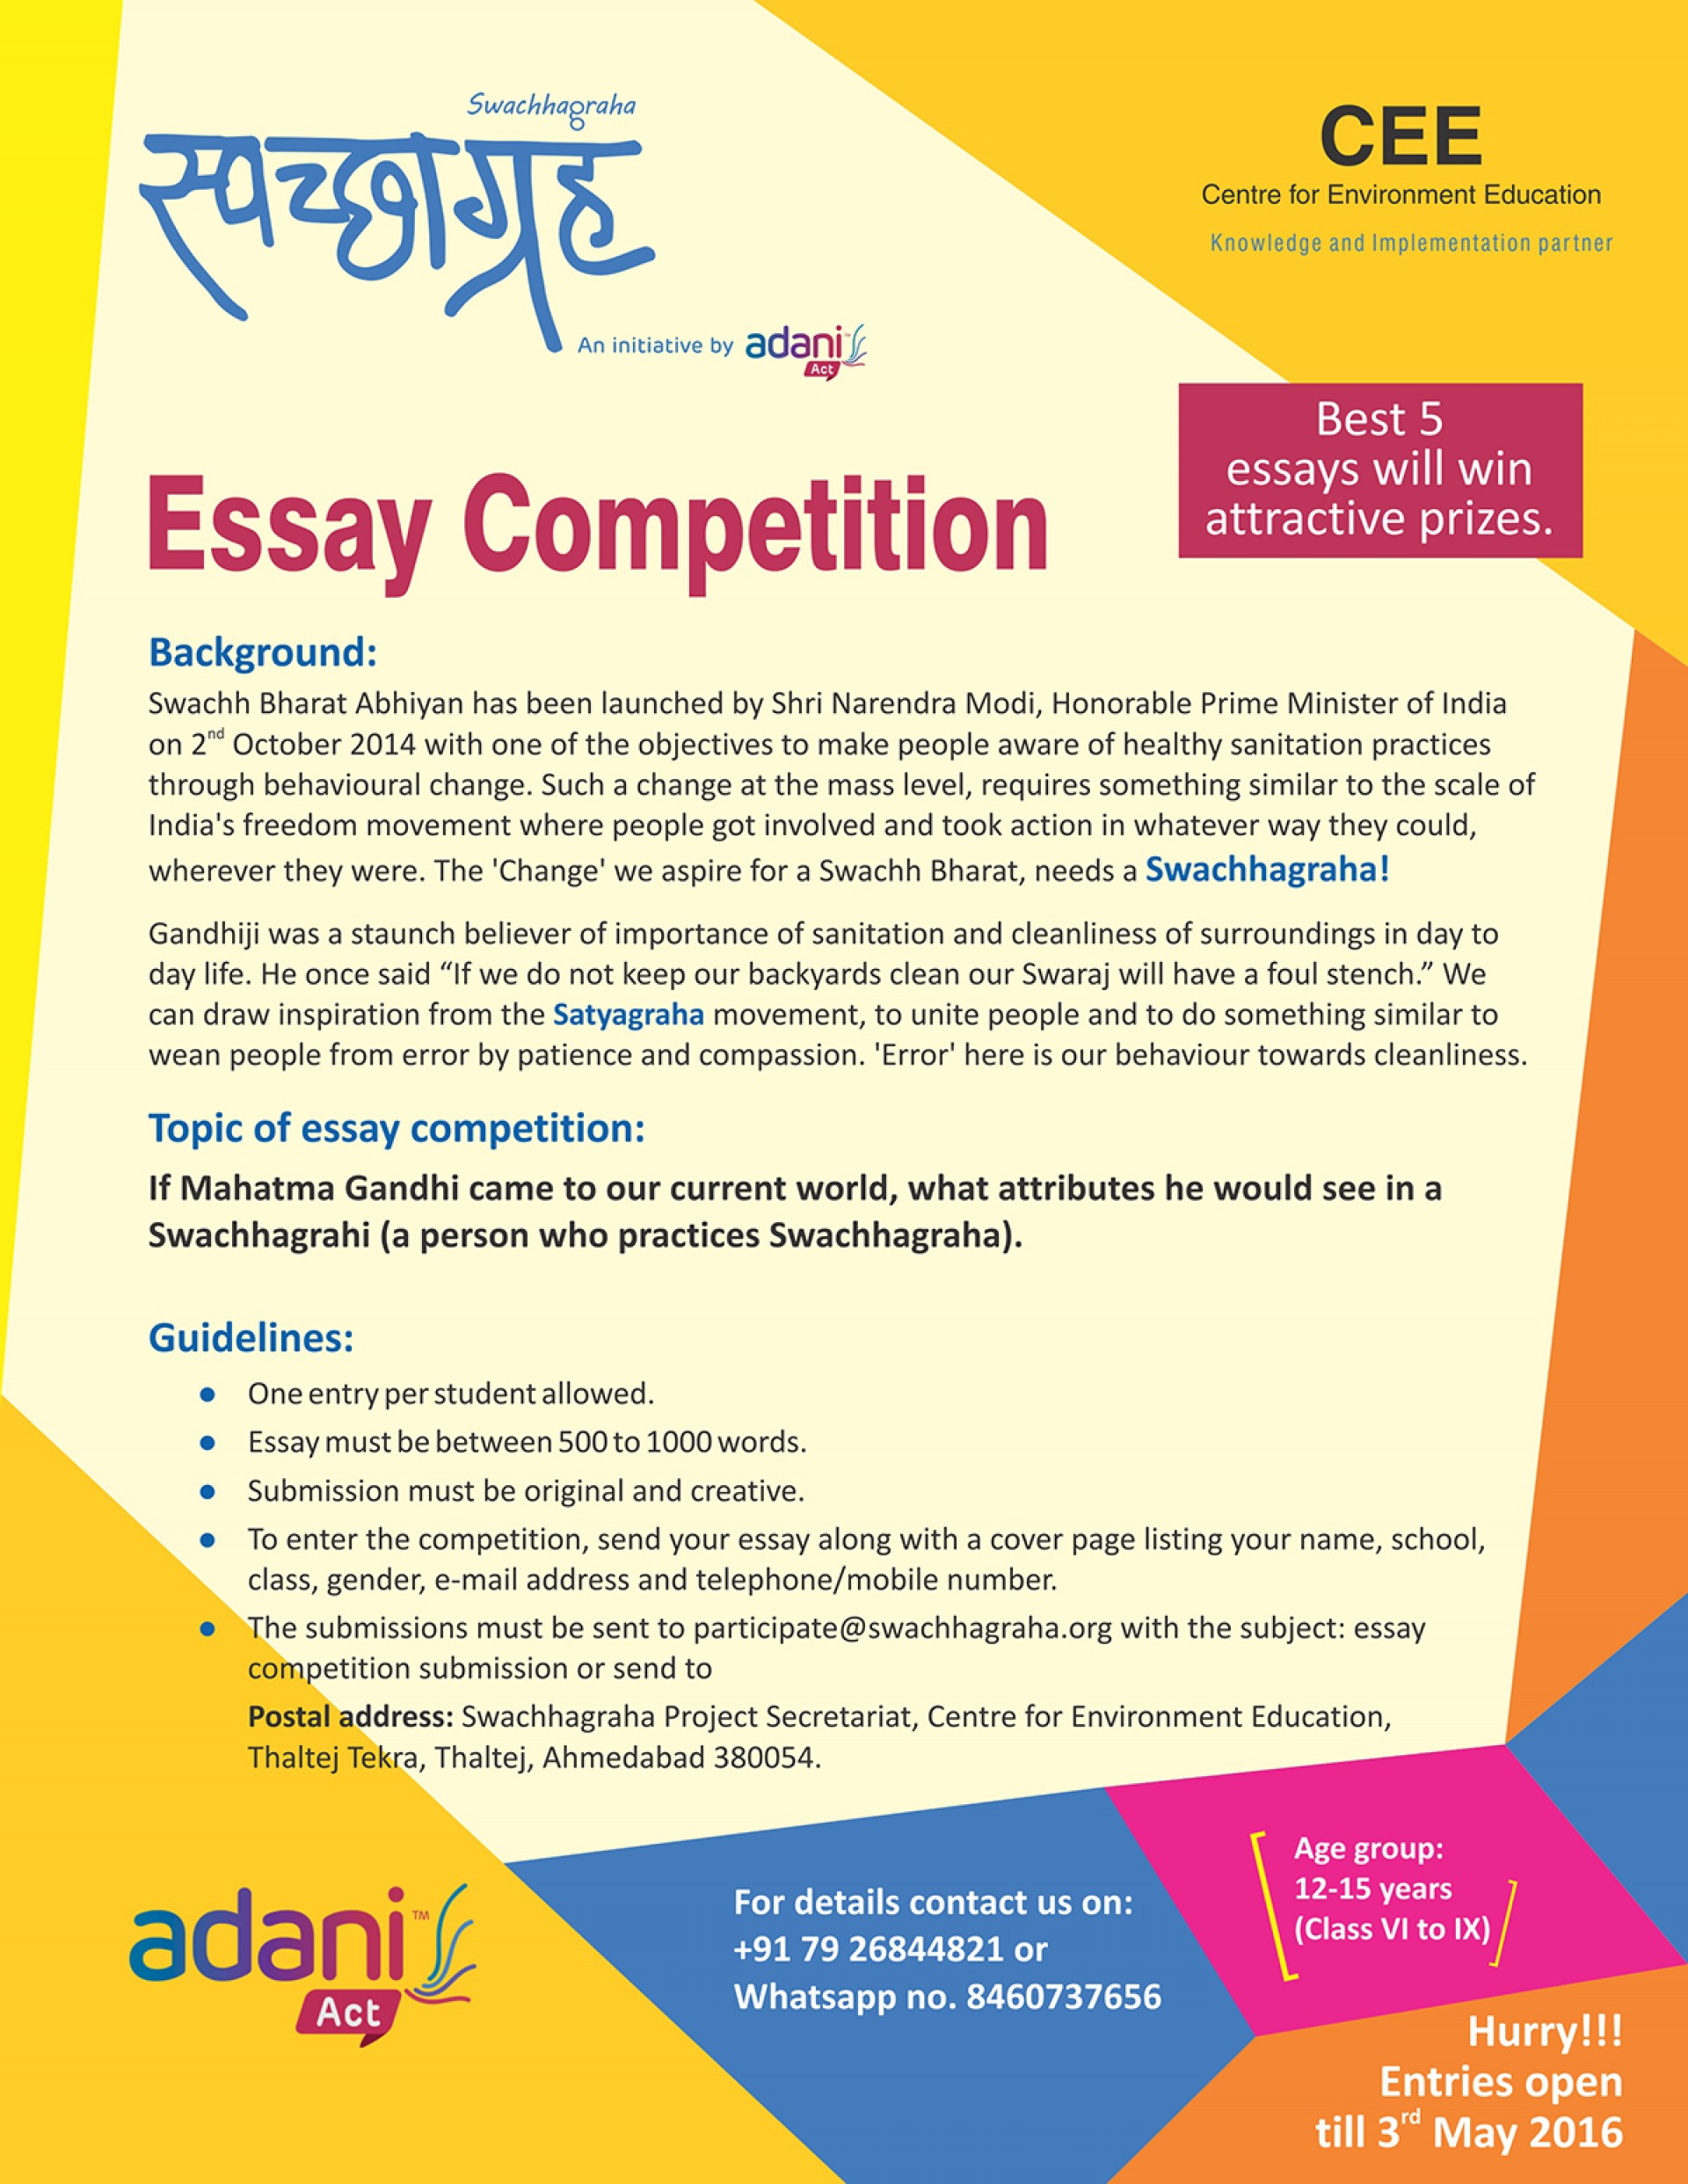 011 20180129171946essay20competition Essay About Cleanliness In School Phenomenal On Toilet And Its Surrounding Writing Hygiene Practices 1920